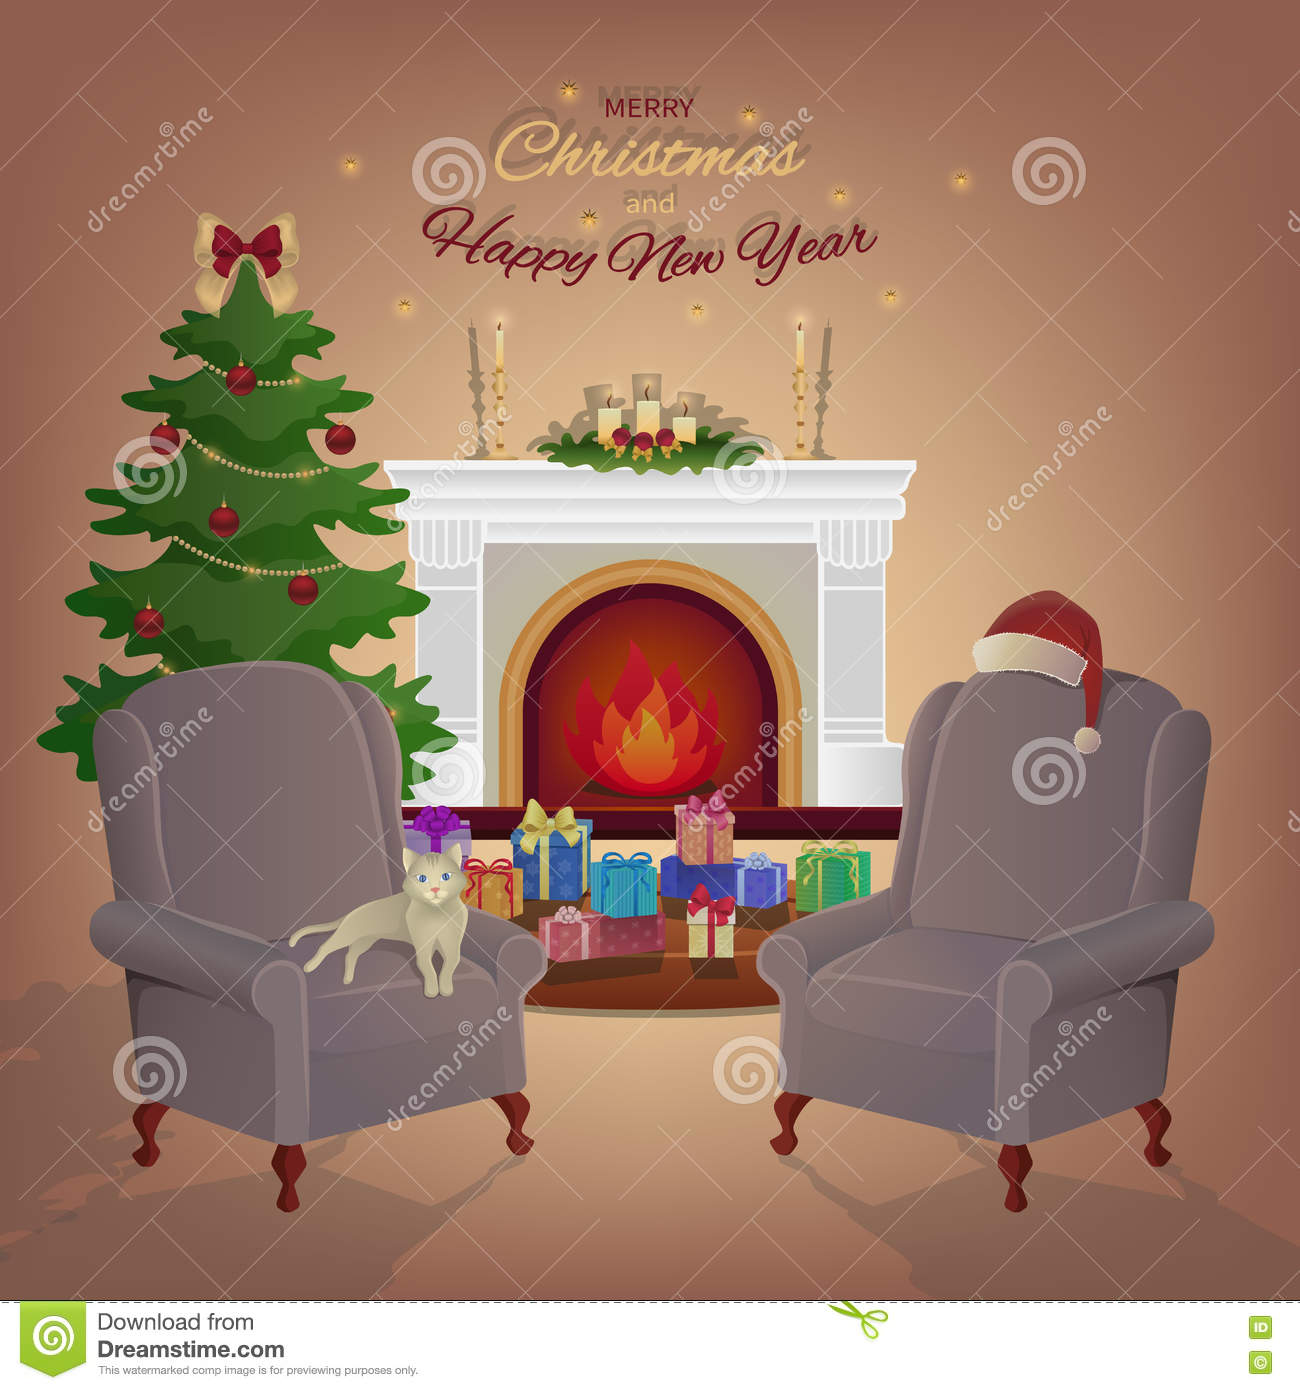 Christmas Room Stock Vector Image Of Illuminated: Merry Christmas Room Interior With A Fireplace, Christmas